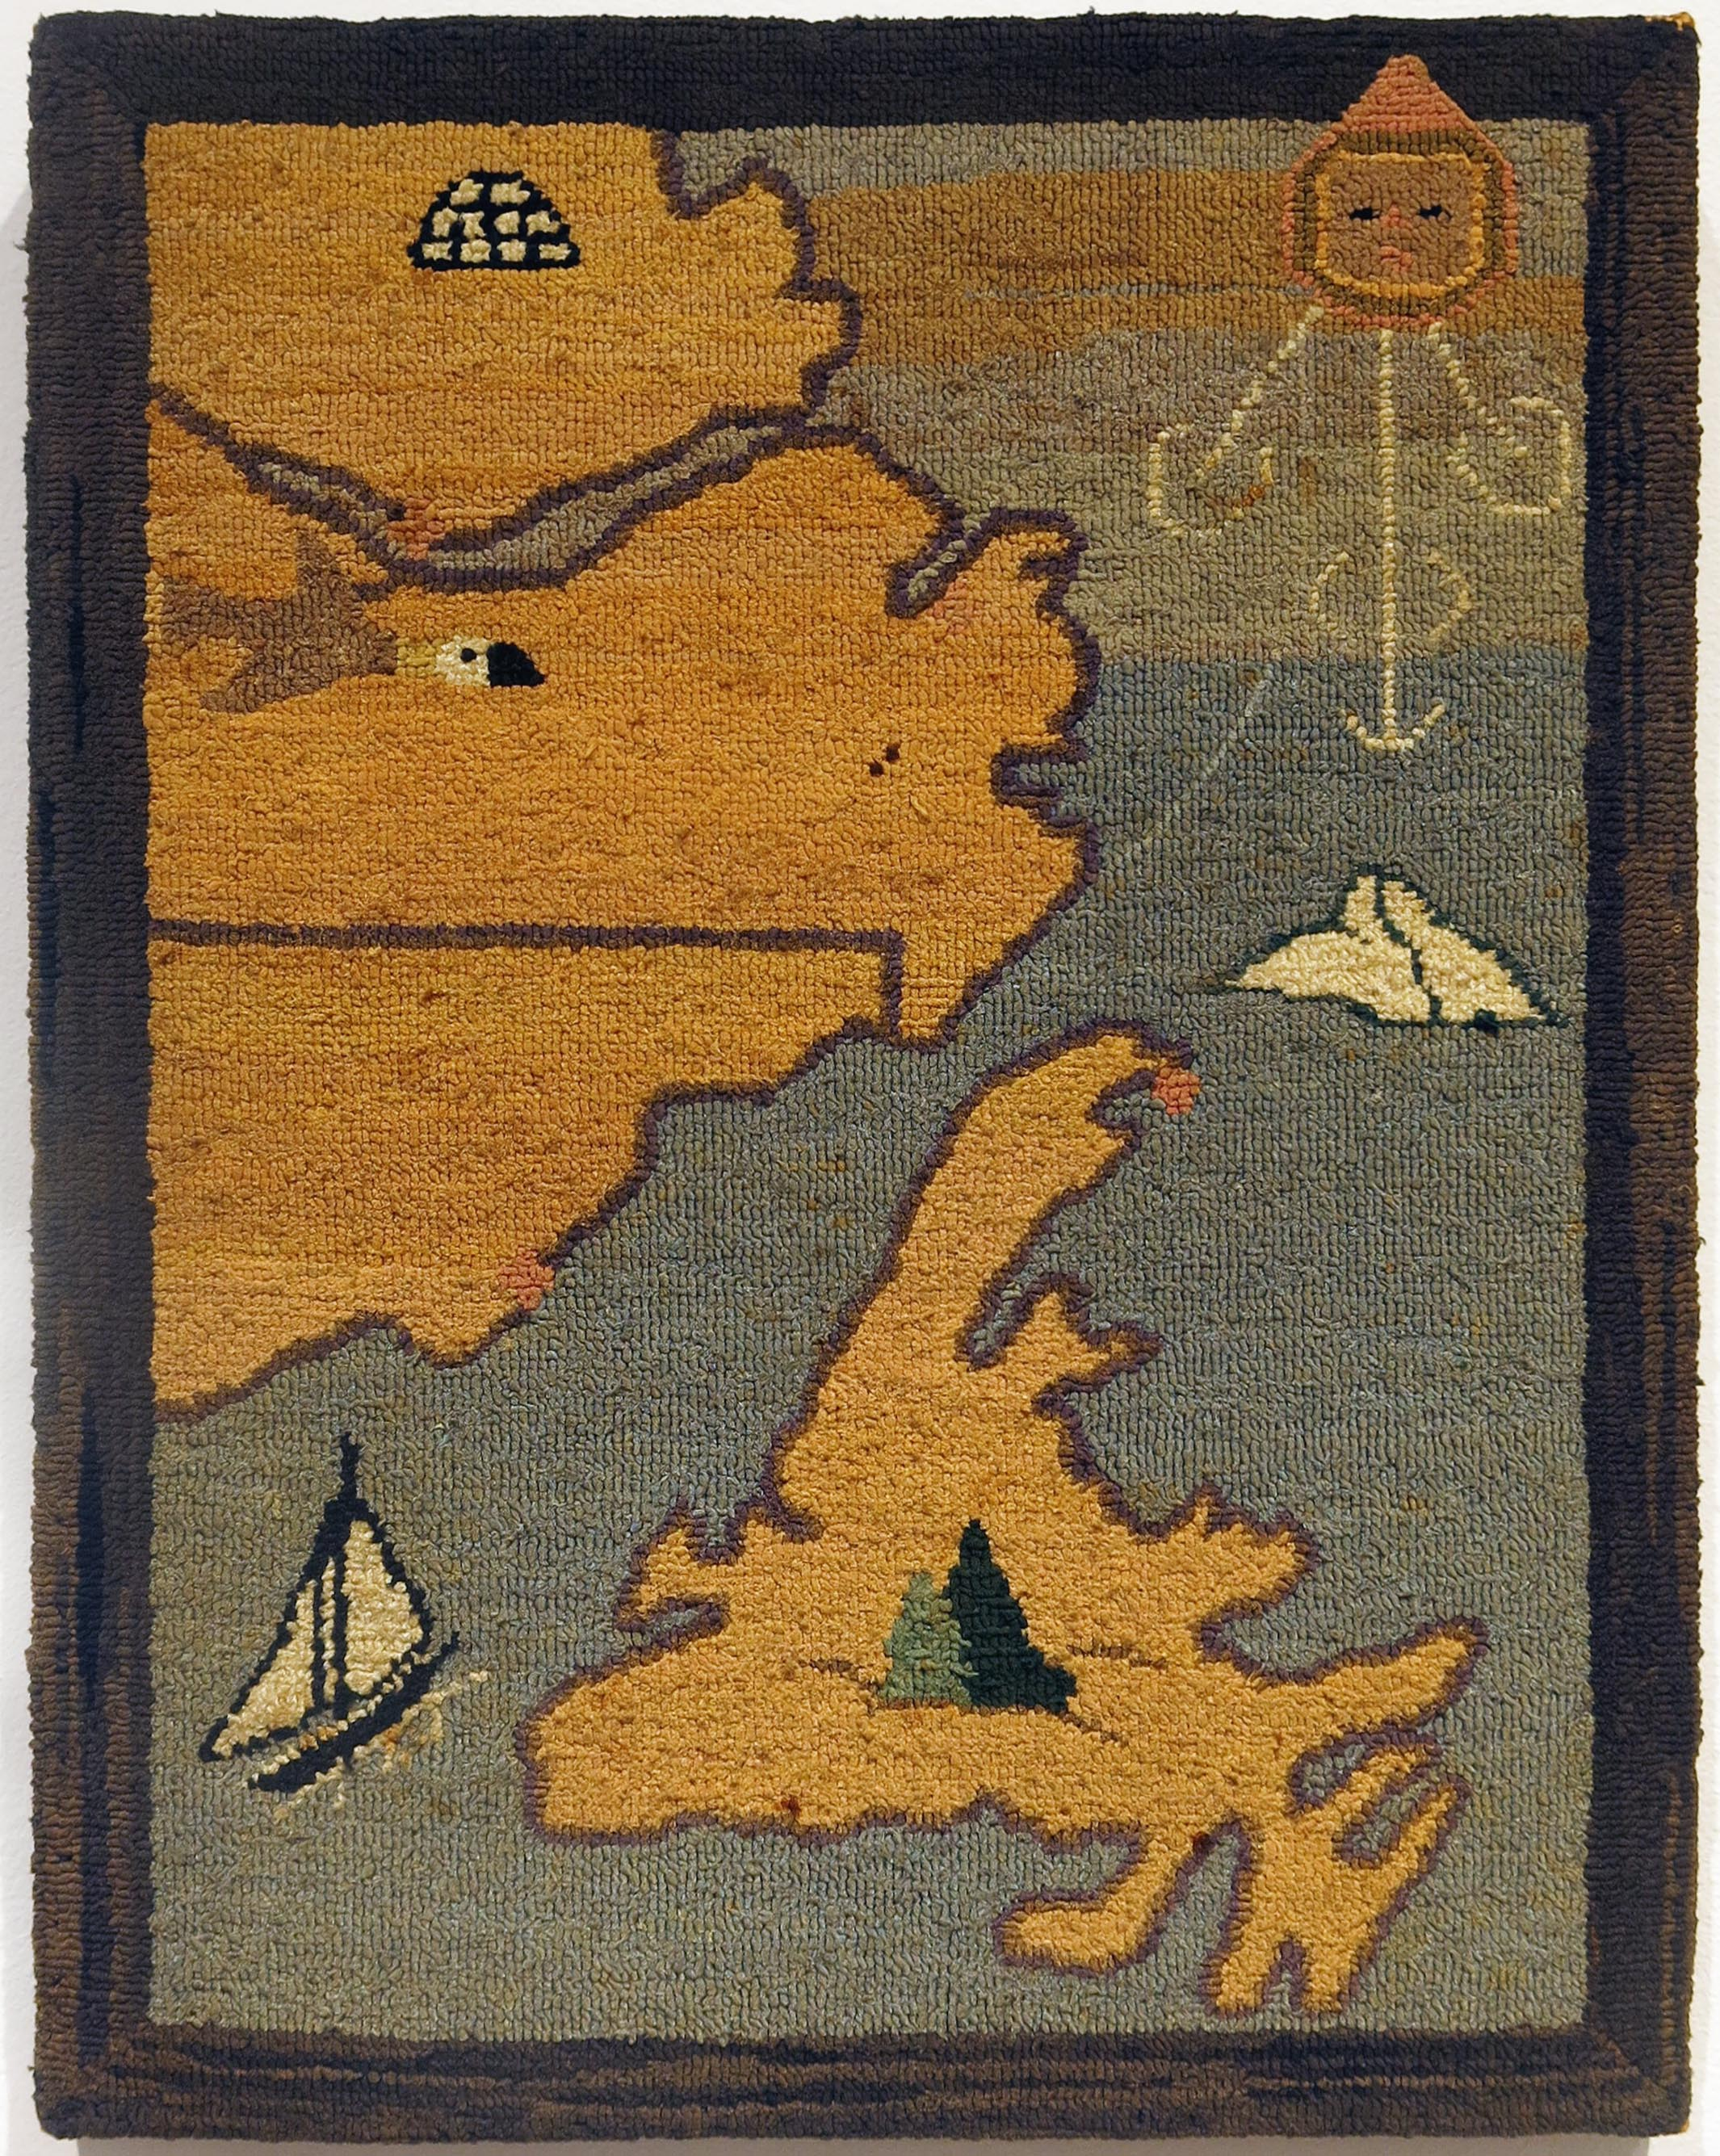 Anonymous, The Grenfell Mission, Map of Labrador, c. 1936, silk and rayon; dyed, 14 1/2h x 18w in.